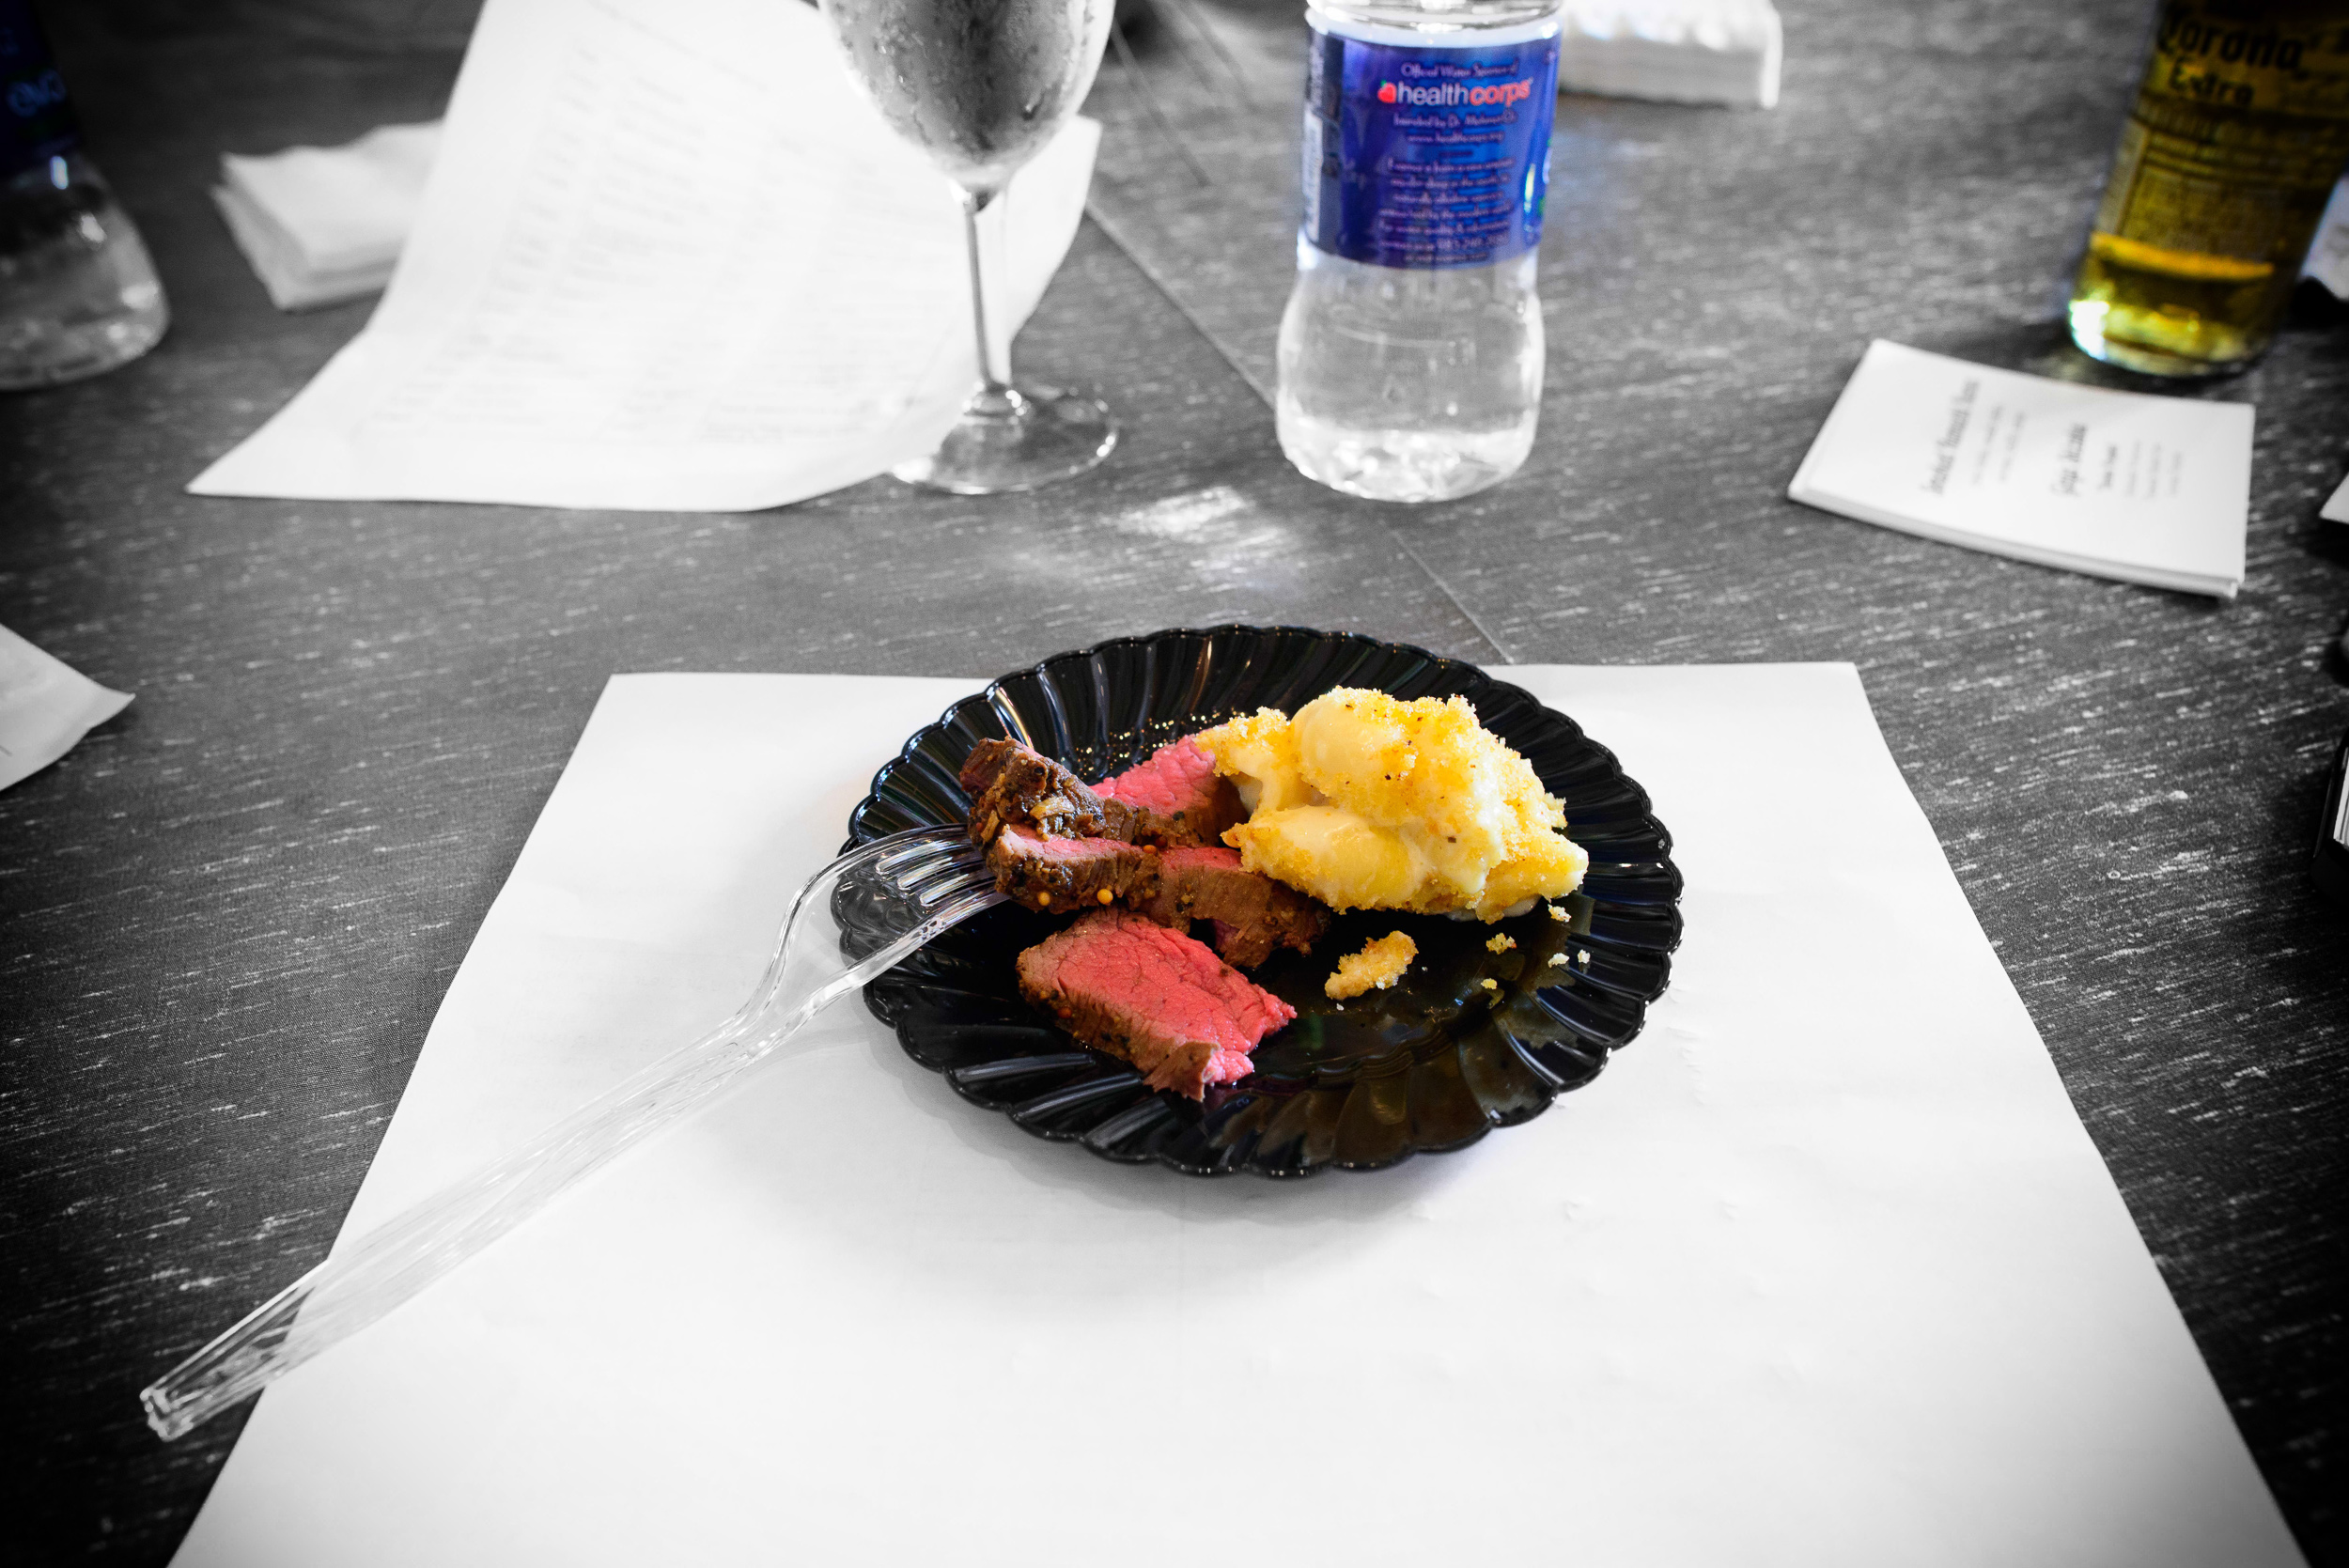 9th Contestant: Sullivan's - Porcini crusted tenderloin, truffle